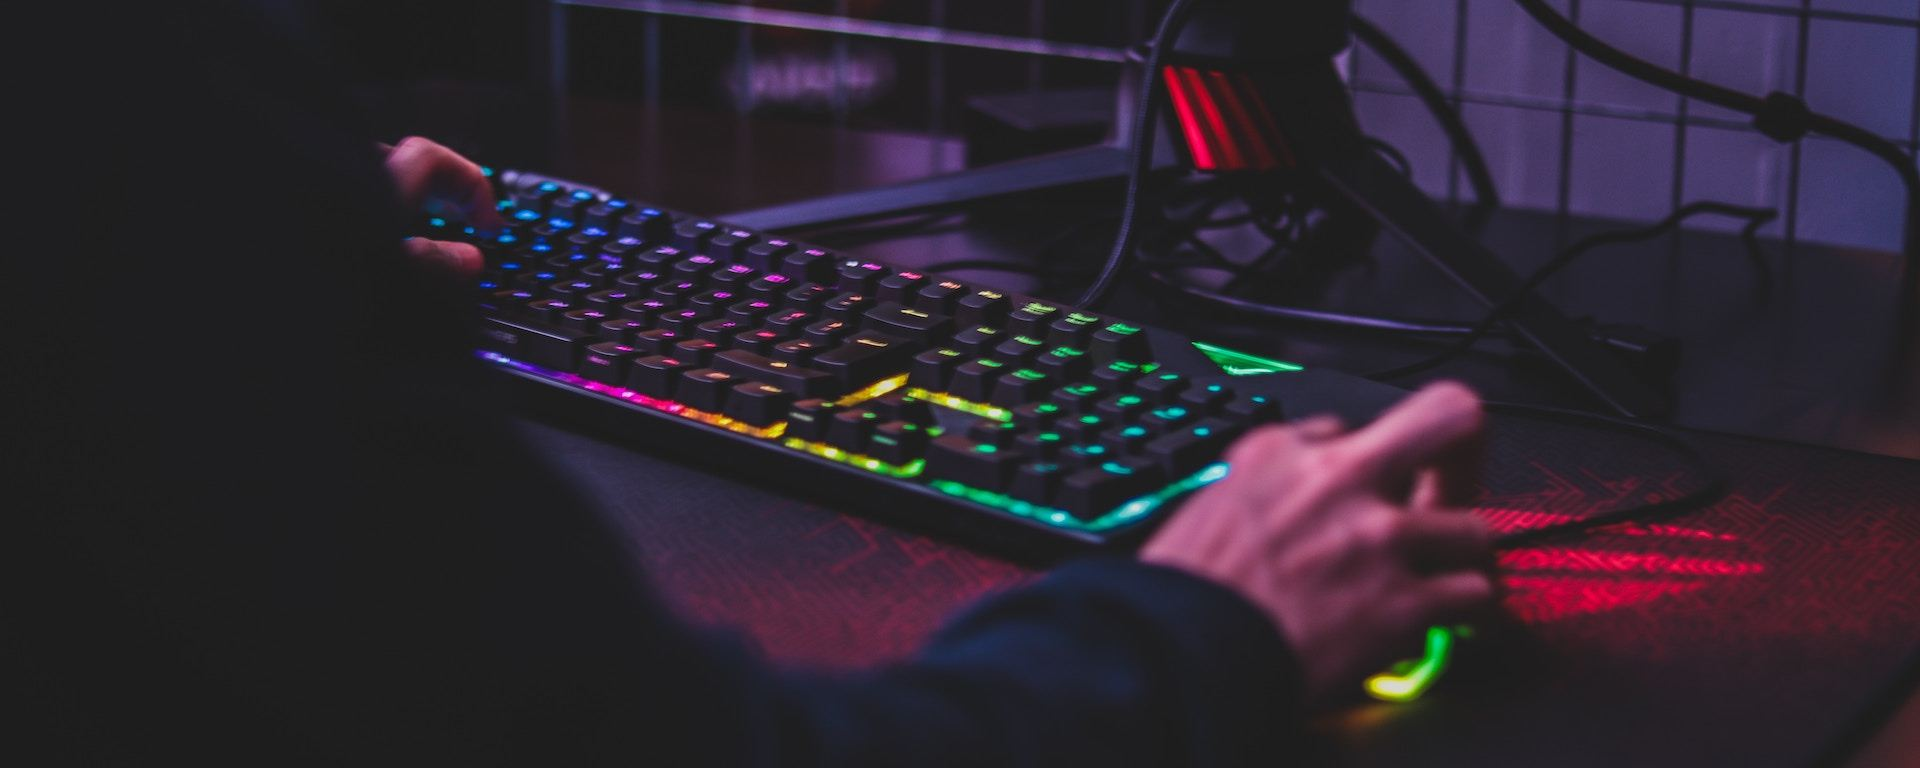 7 best gaming mouse for league of legends